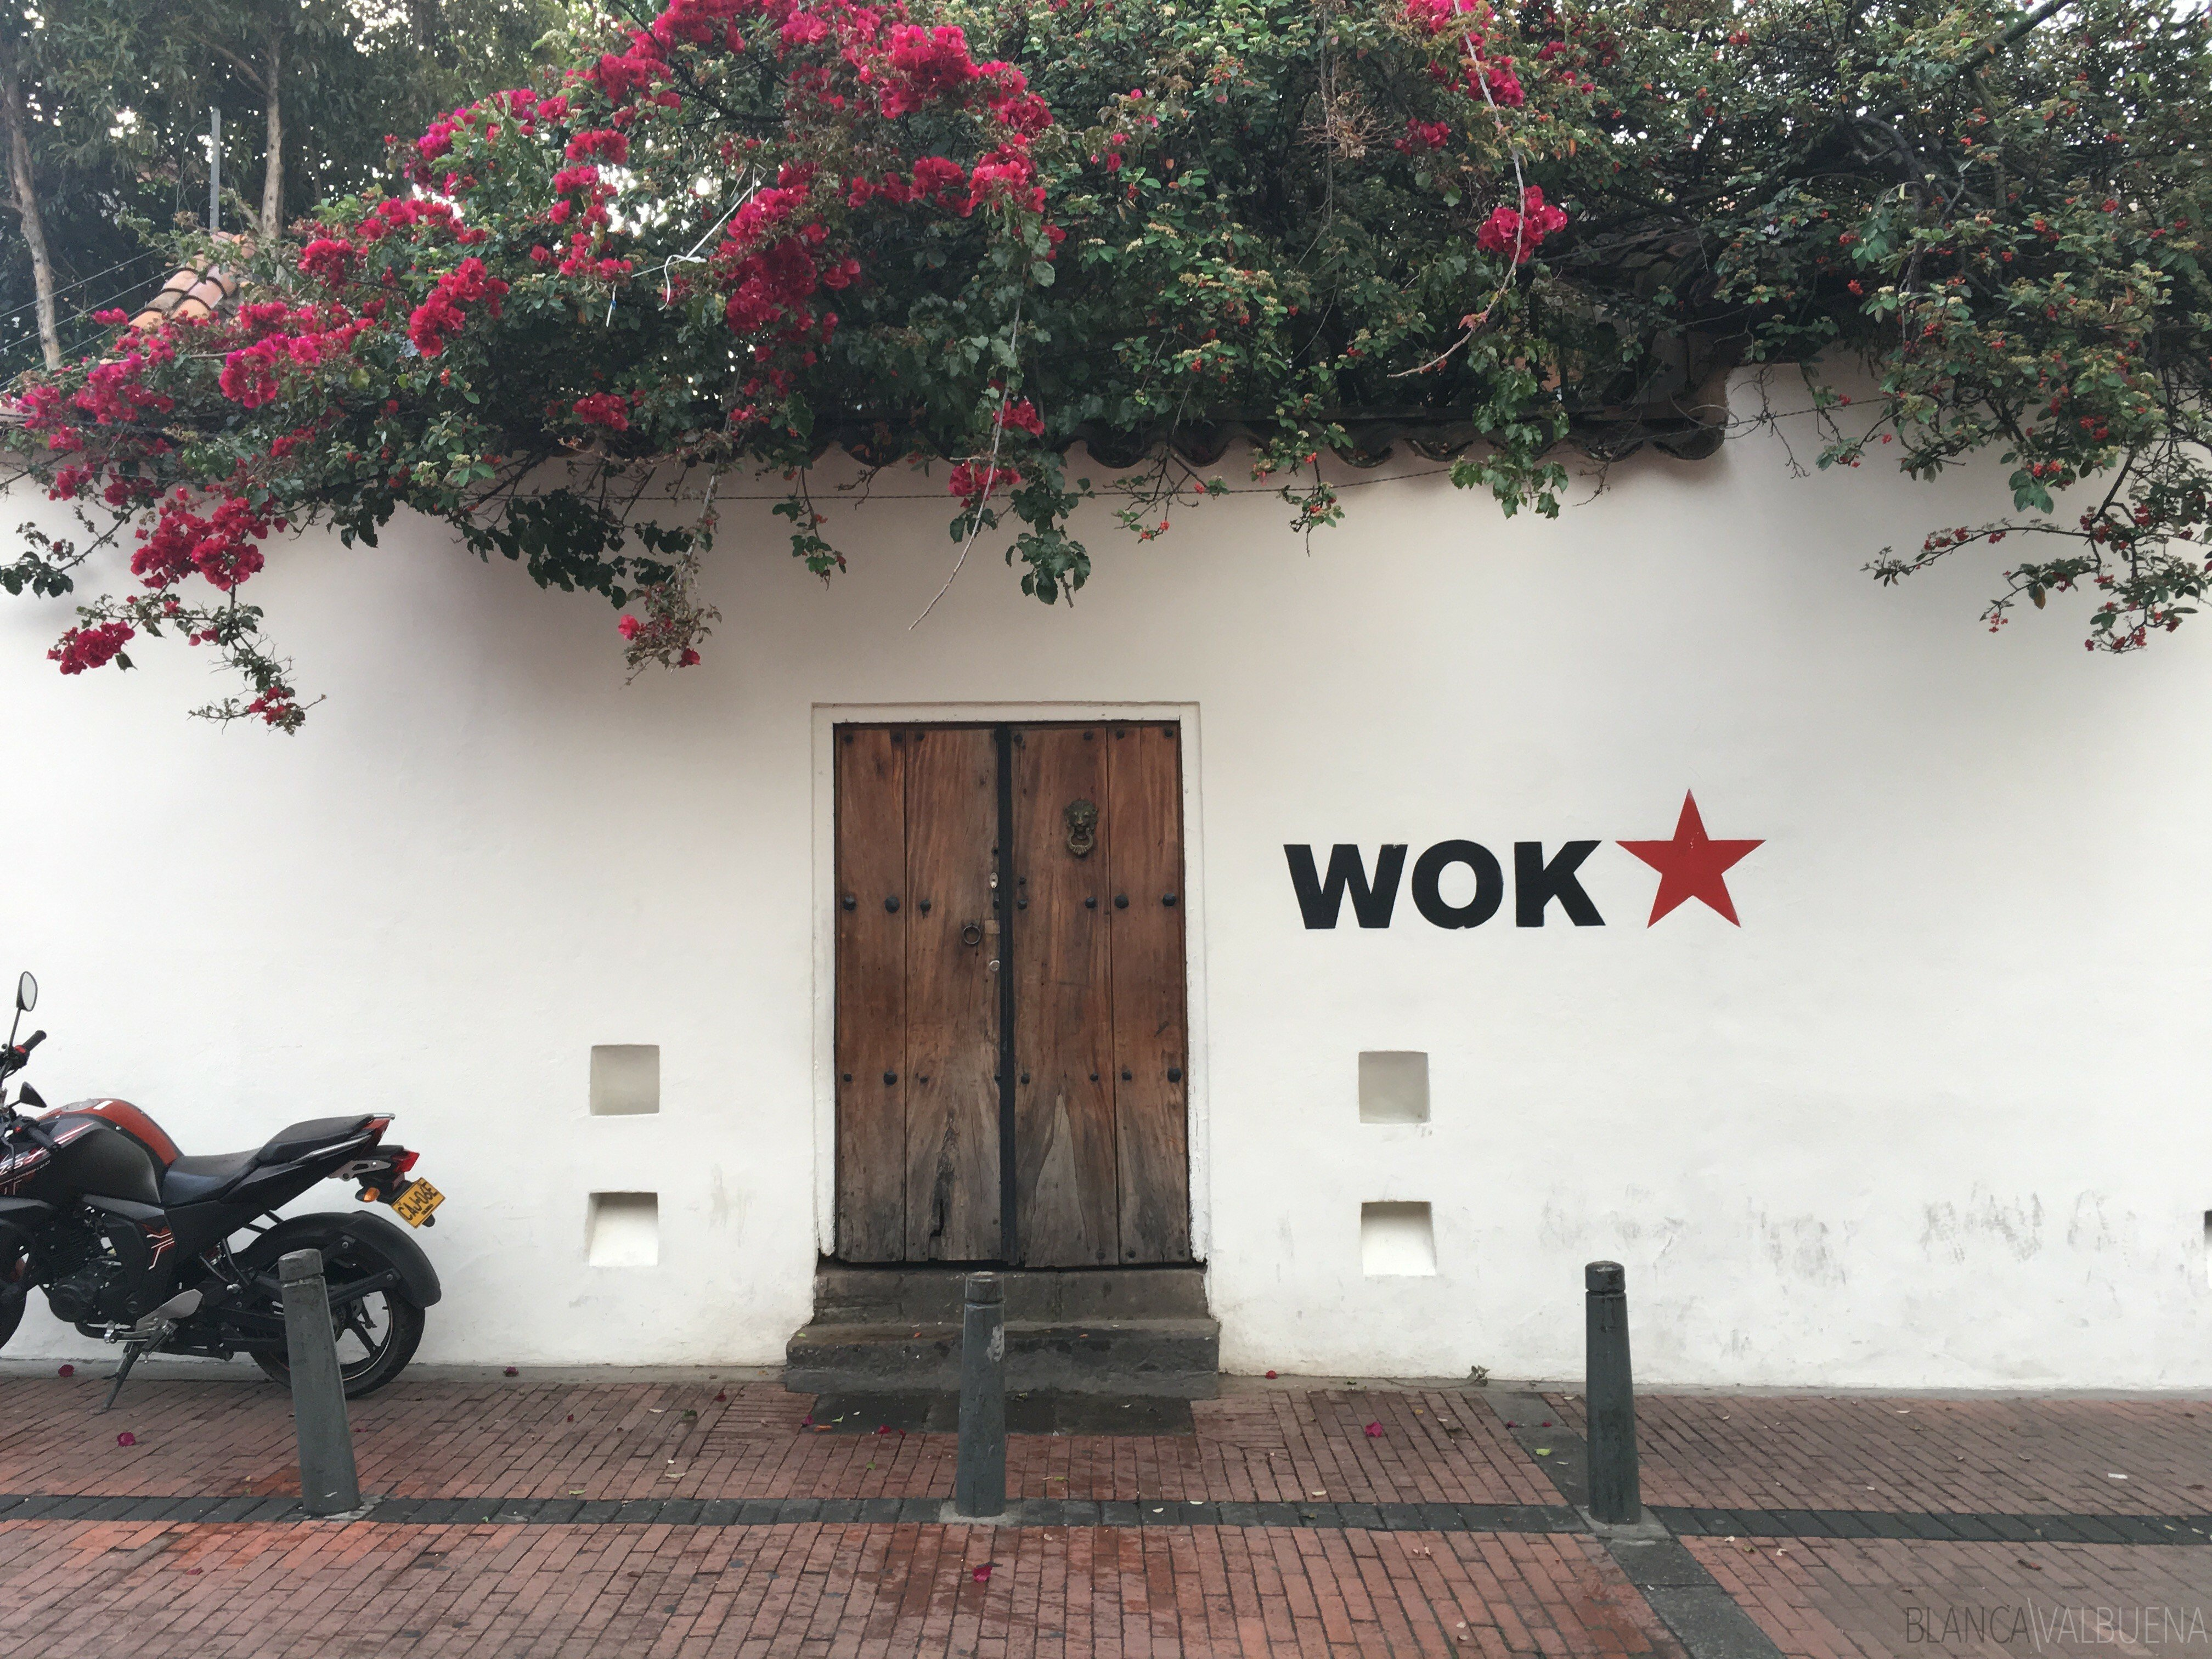 Wok is a great place for cocktails in Bogota